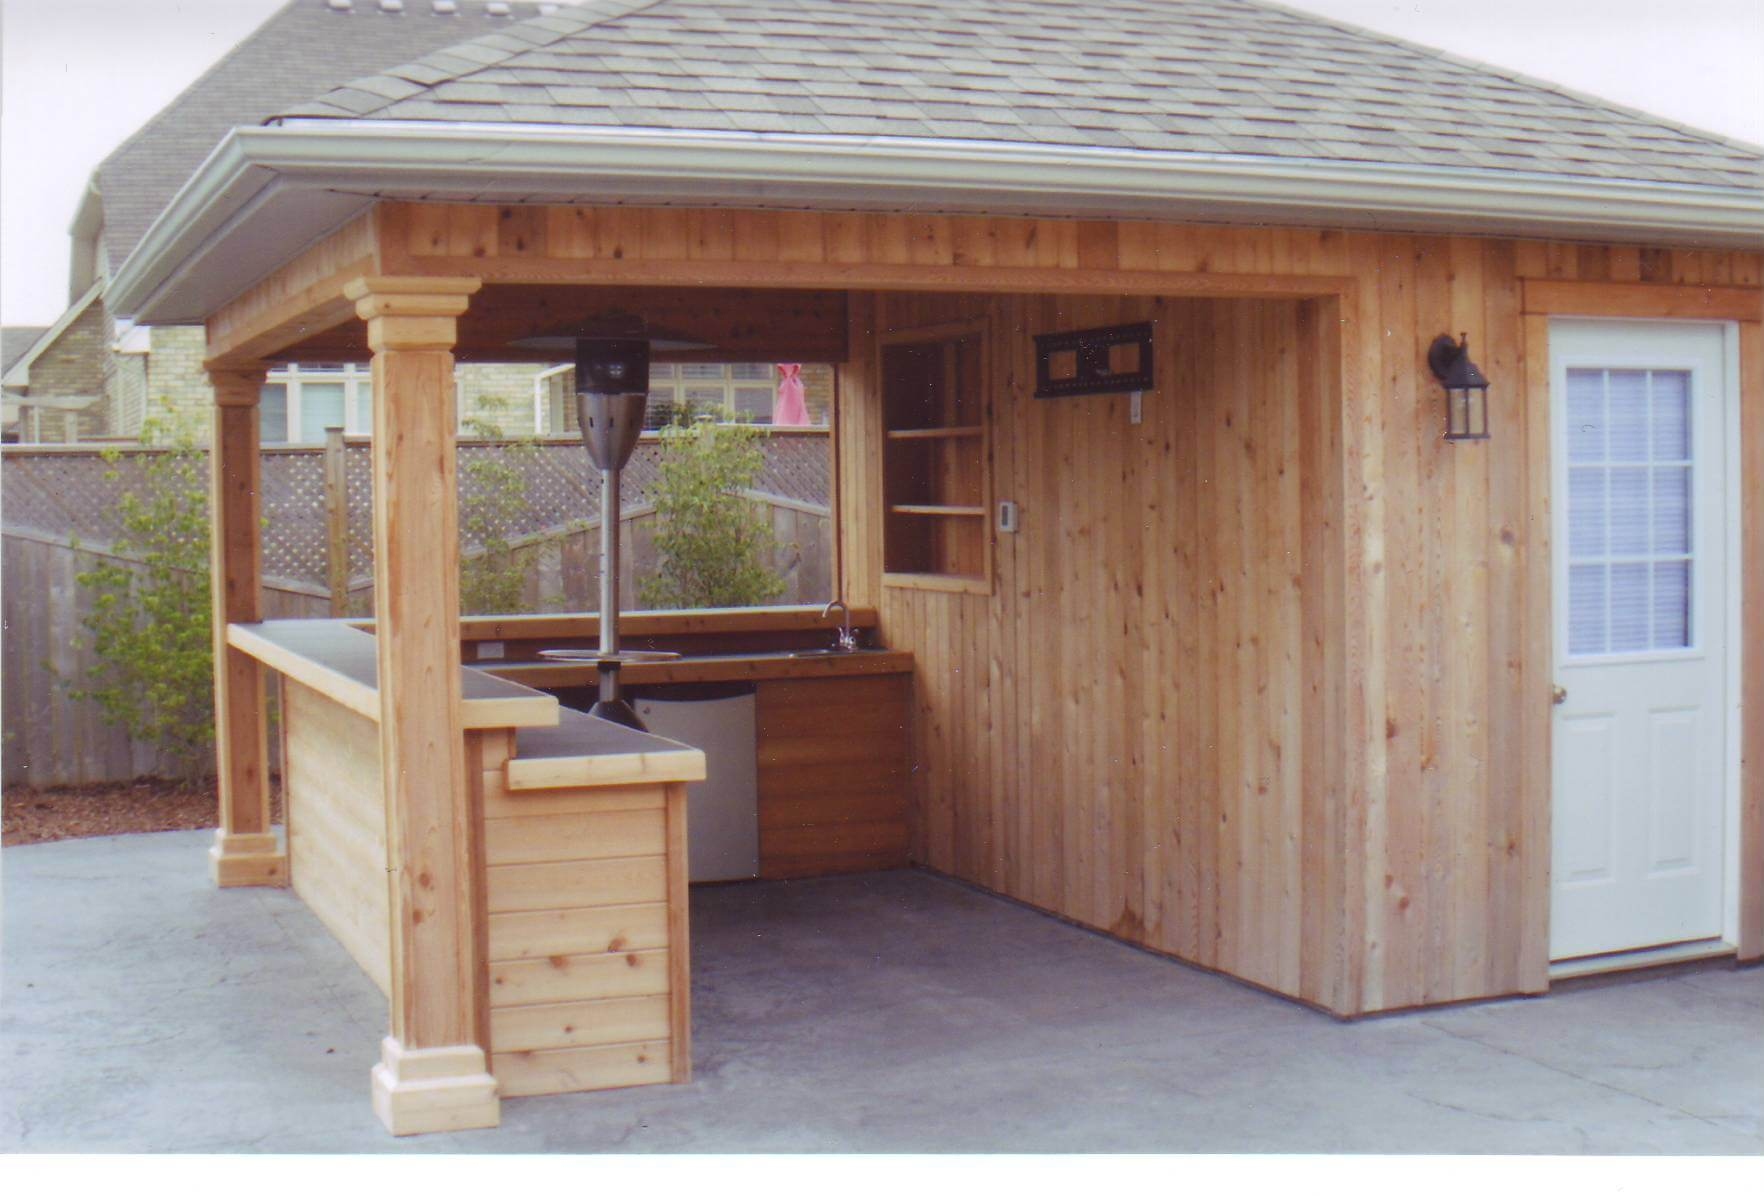 Backyard Bar Shed Ideas Build A Pub Shed Backyard Buildings throughout Backyard Bar Ideas